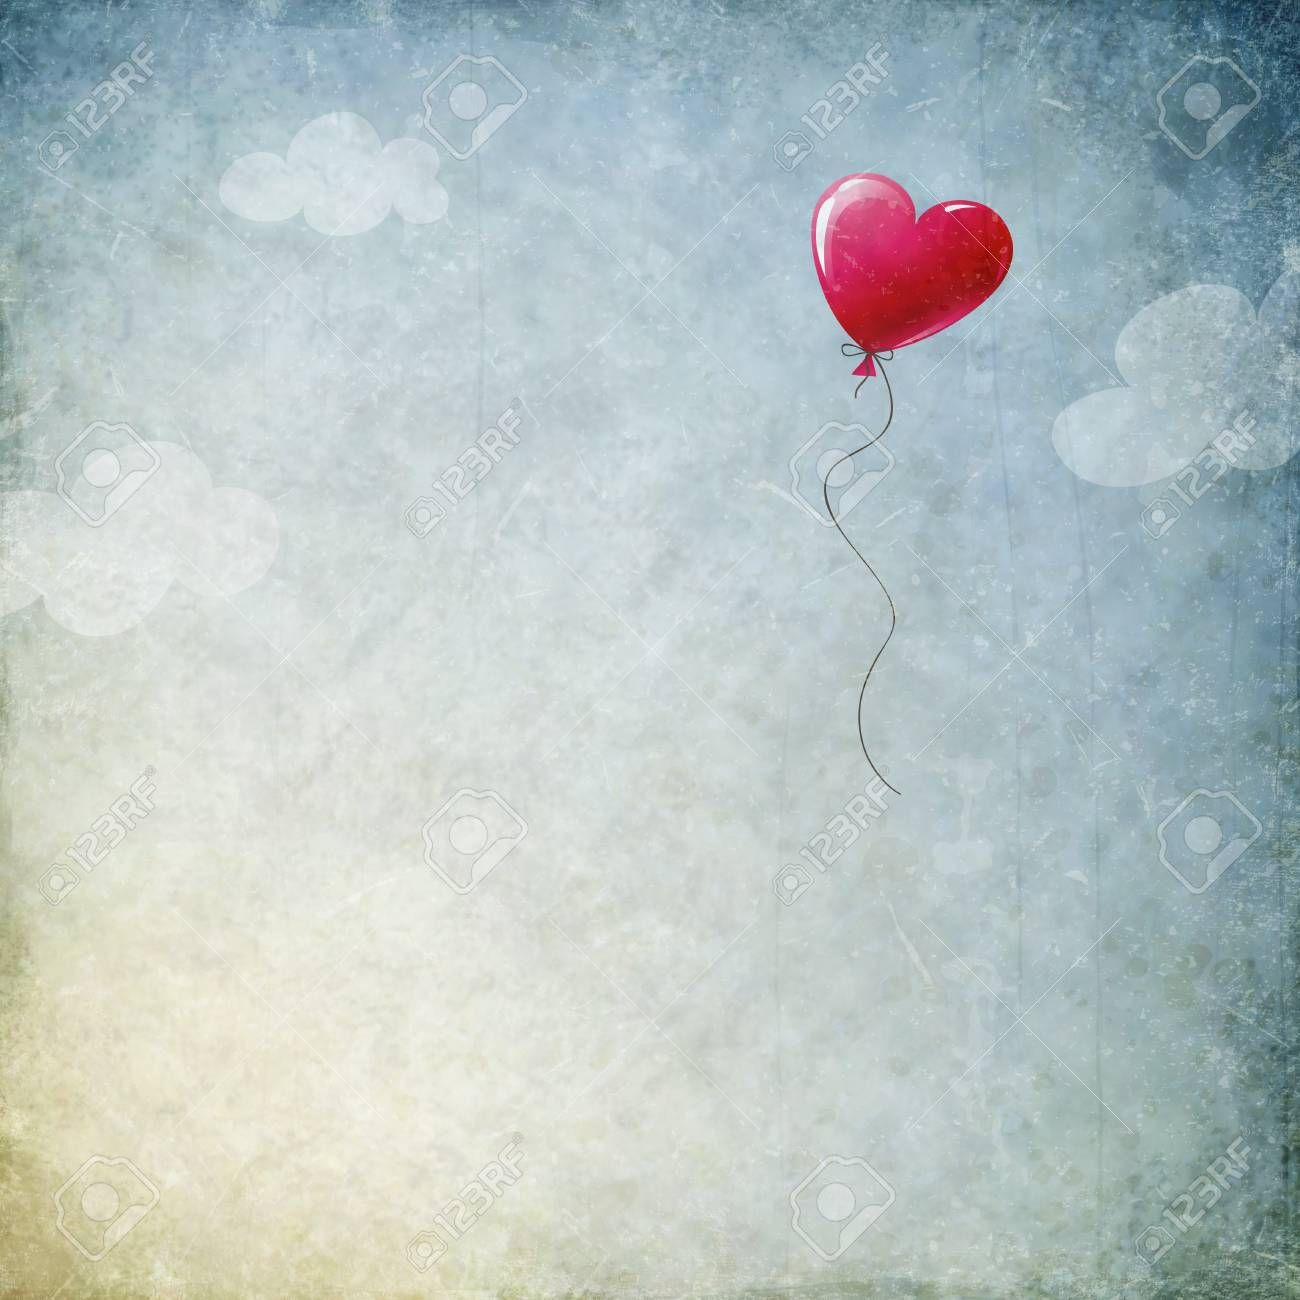 grunge background with heart balloon , #Ad, #background, #grunge, #balloon, #heart